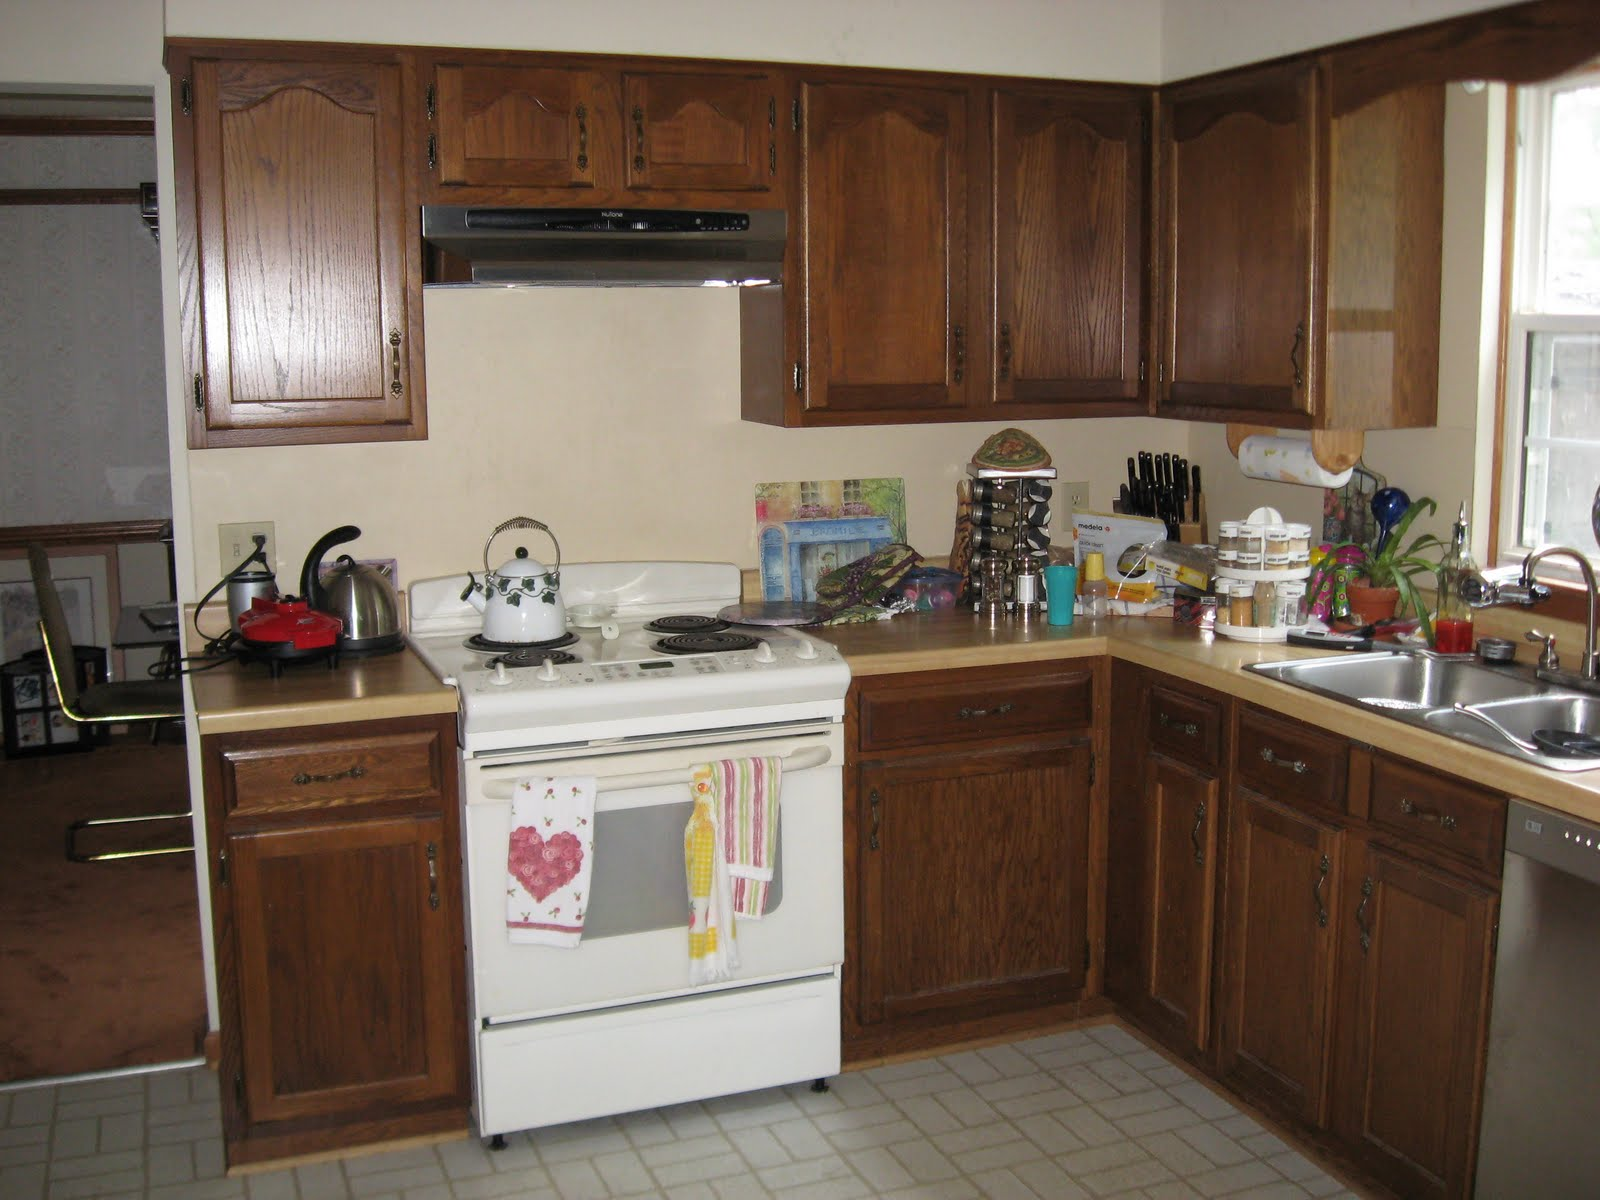 Kitchen Cabinets with Pulls